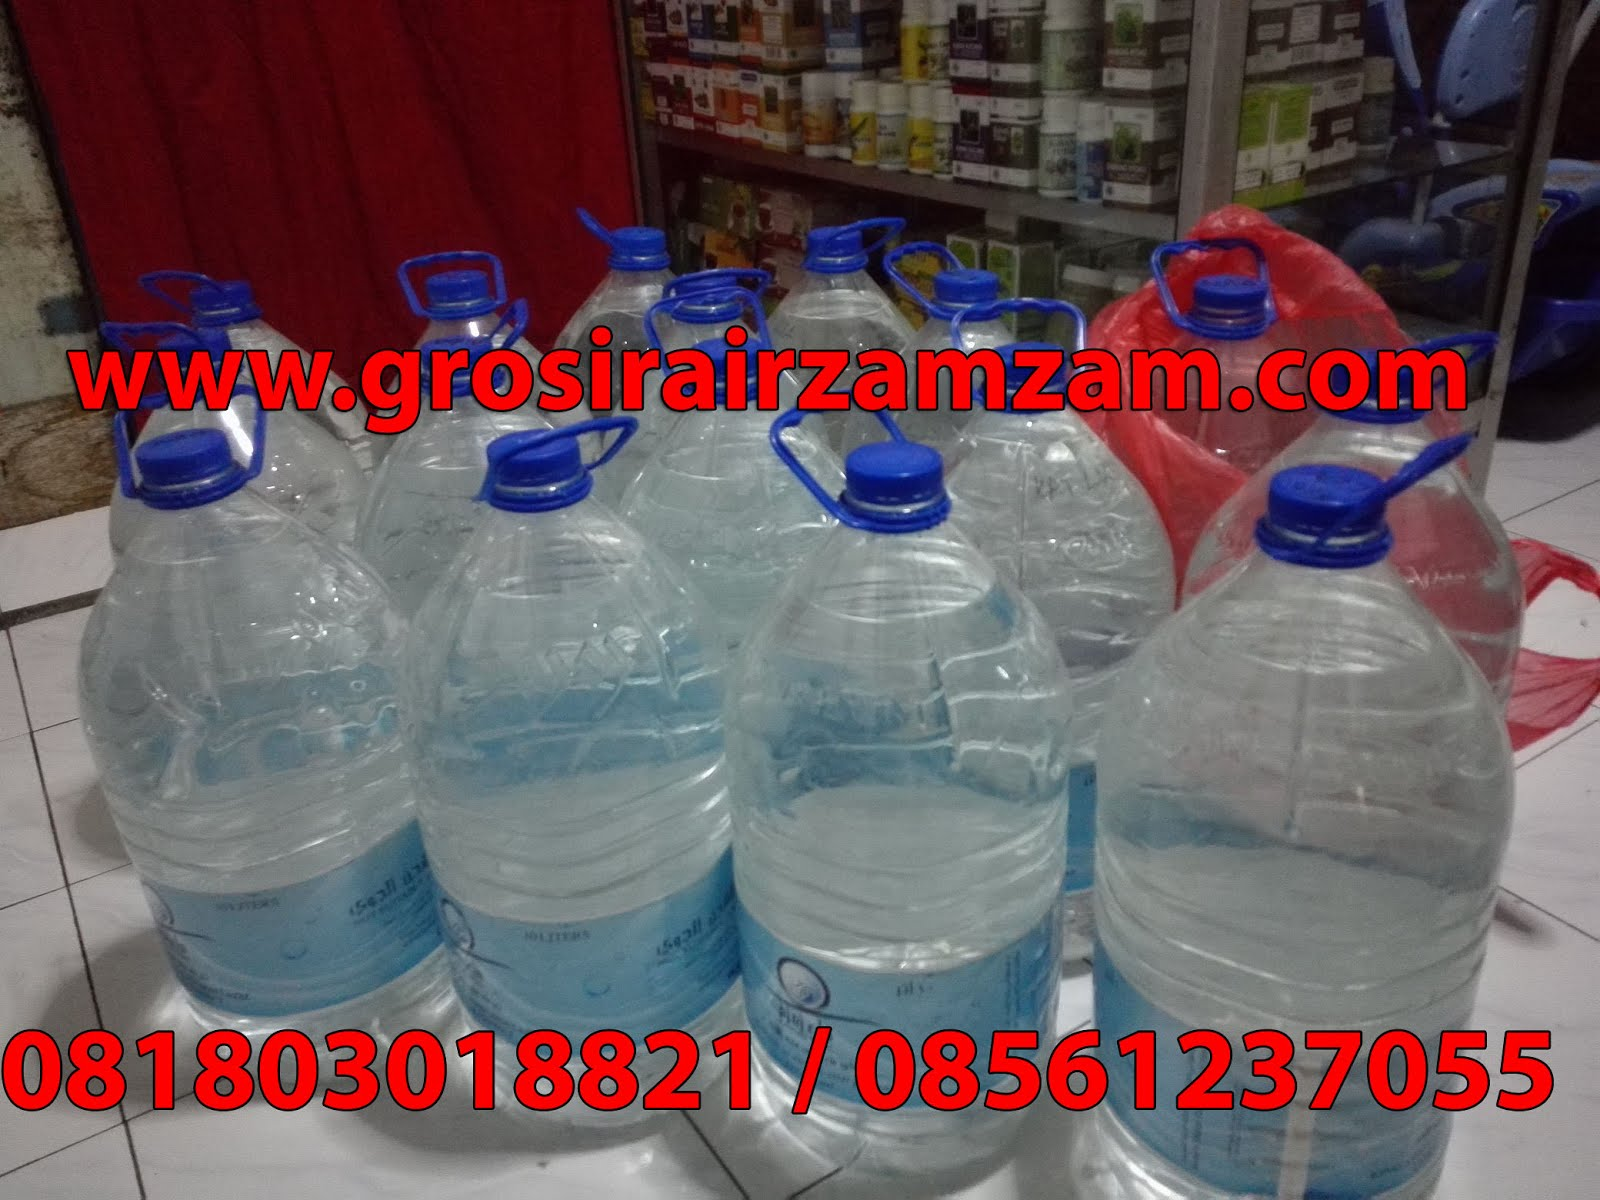 Supplier Air Zamzam Asli